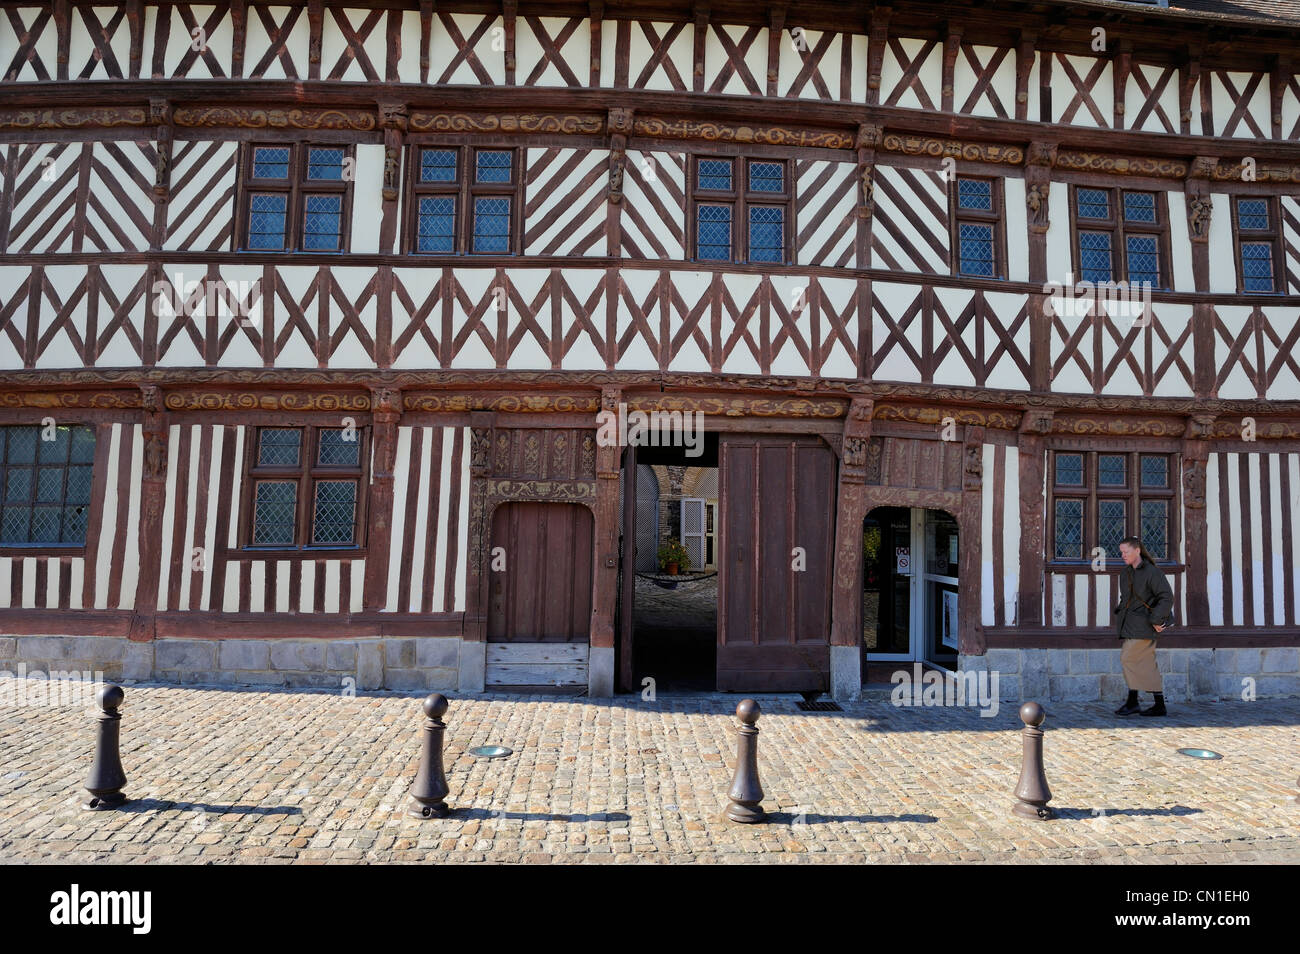 France, Seine Maritime, Saint Valery en Caux, the half timbered house called Henry IV (1540) also called house Ladire - Stock Image